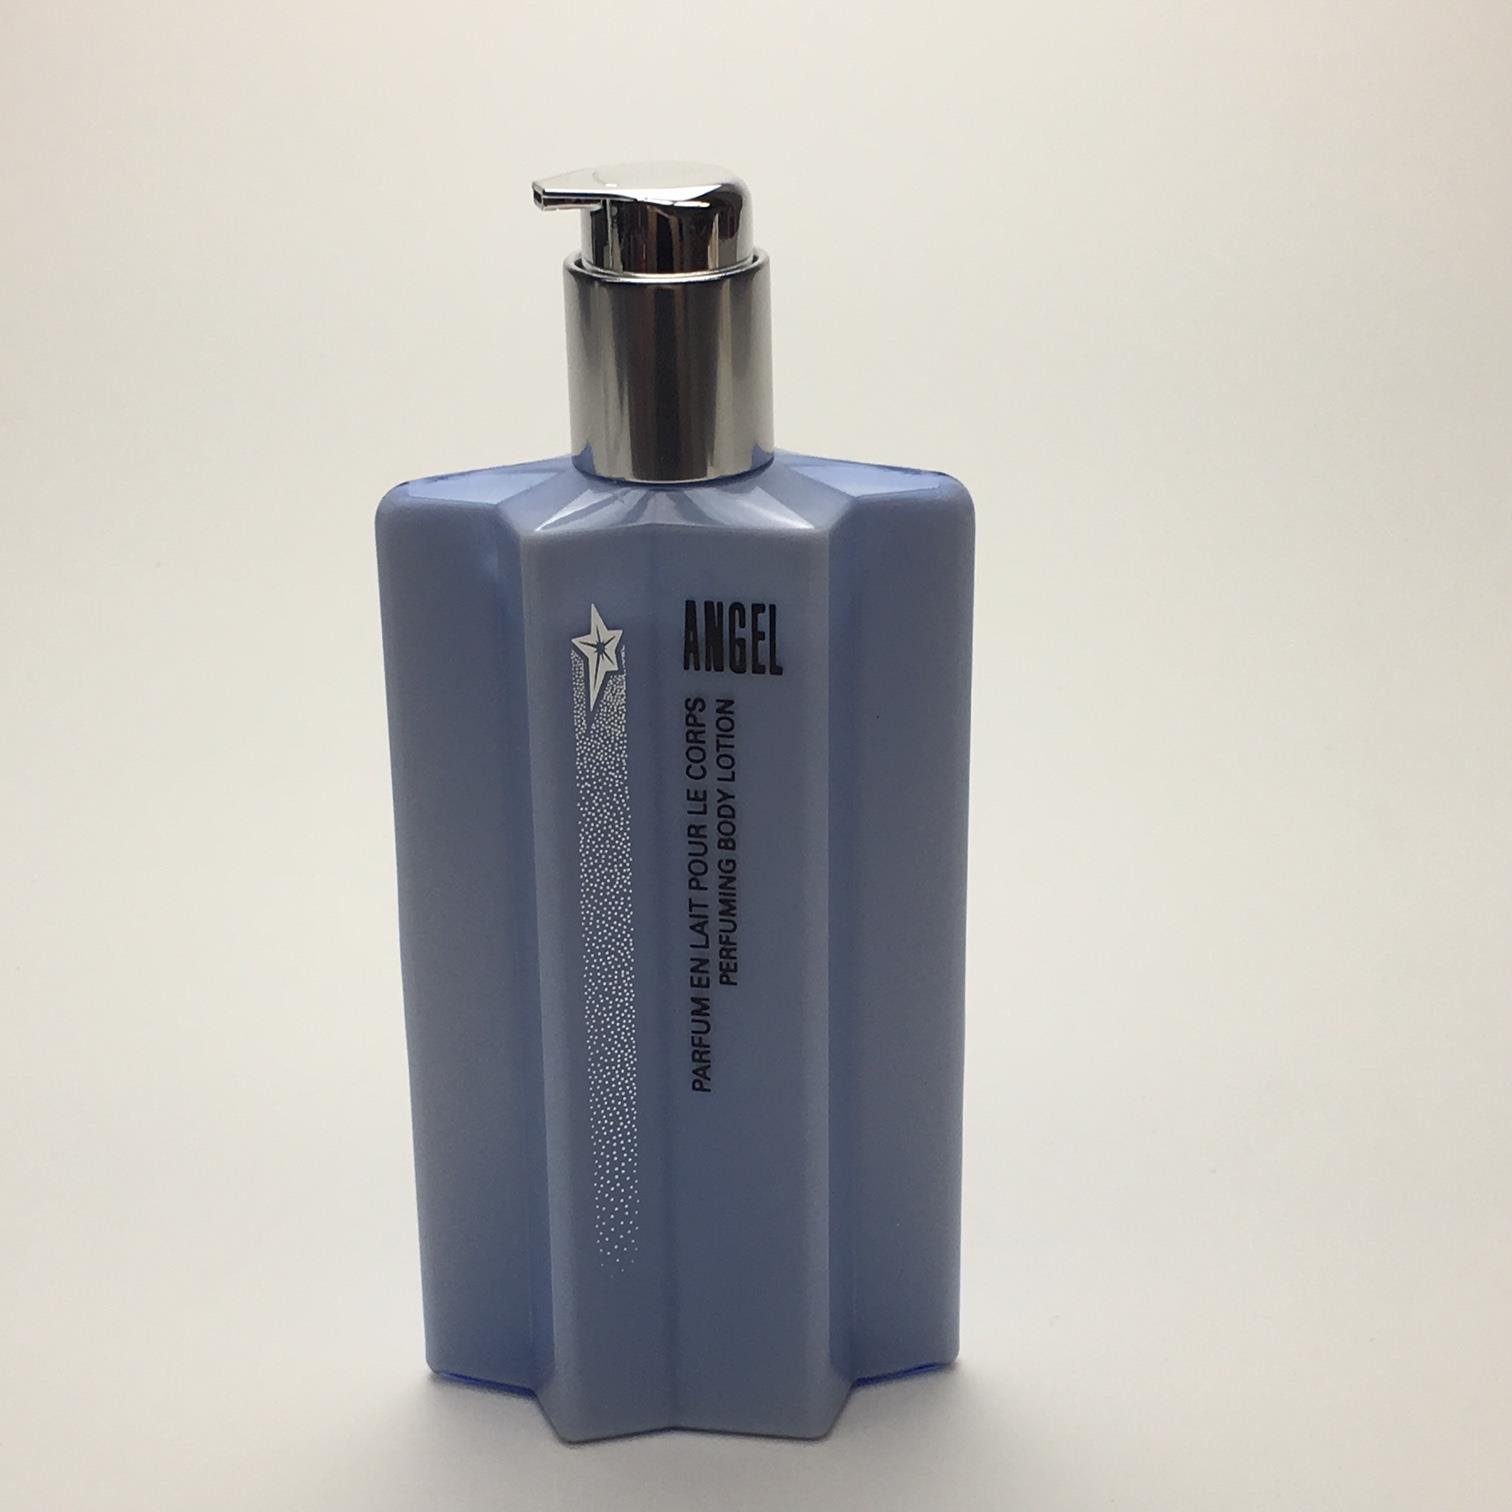 Angel 200ml Perfuming Body Lotion Unboxed Tester By Thierry Mugler